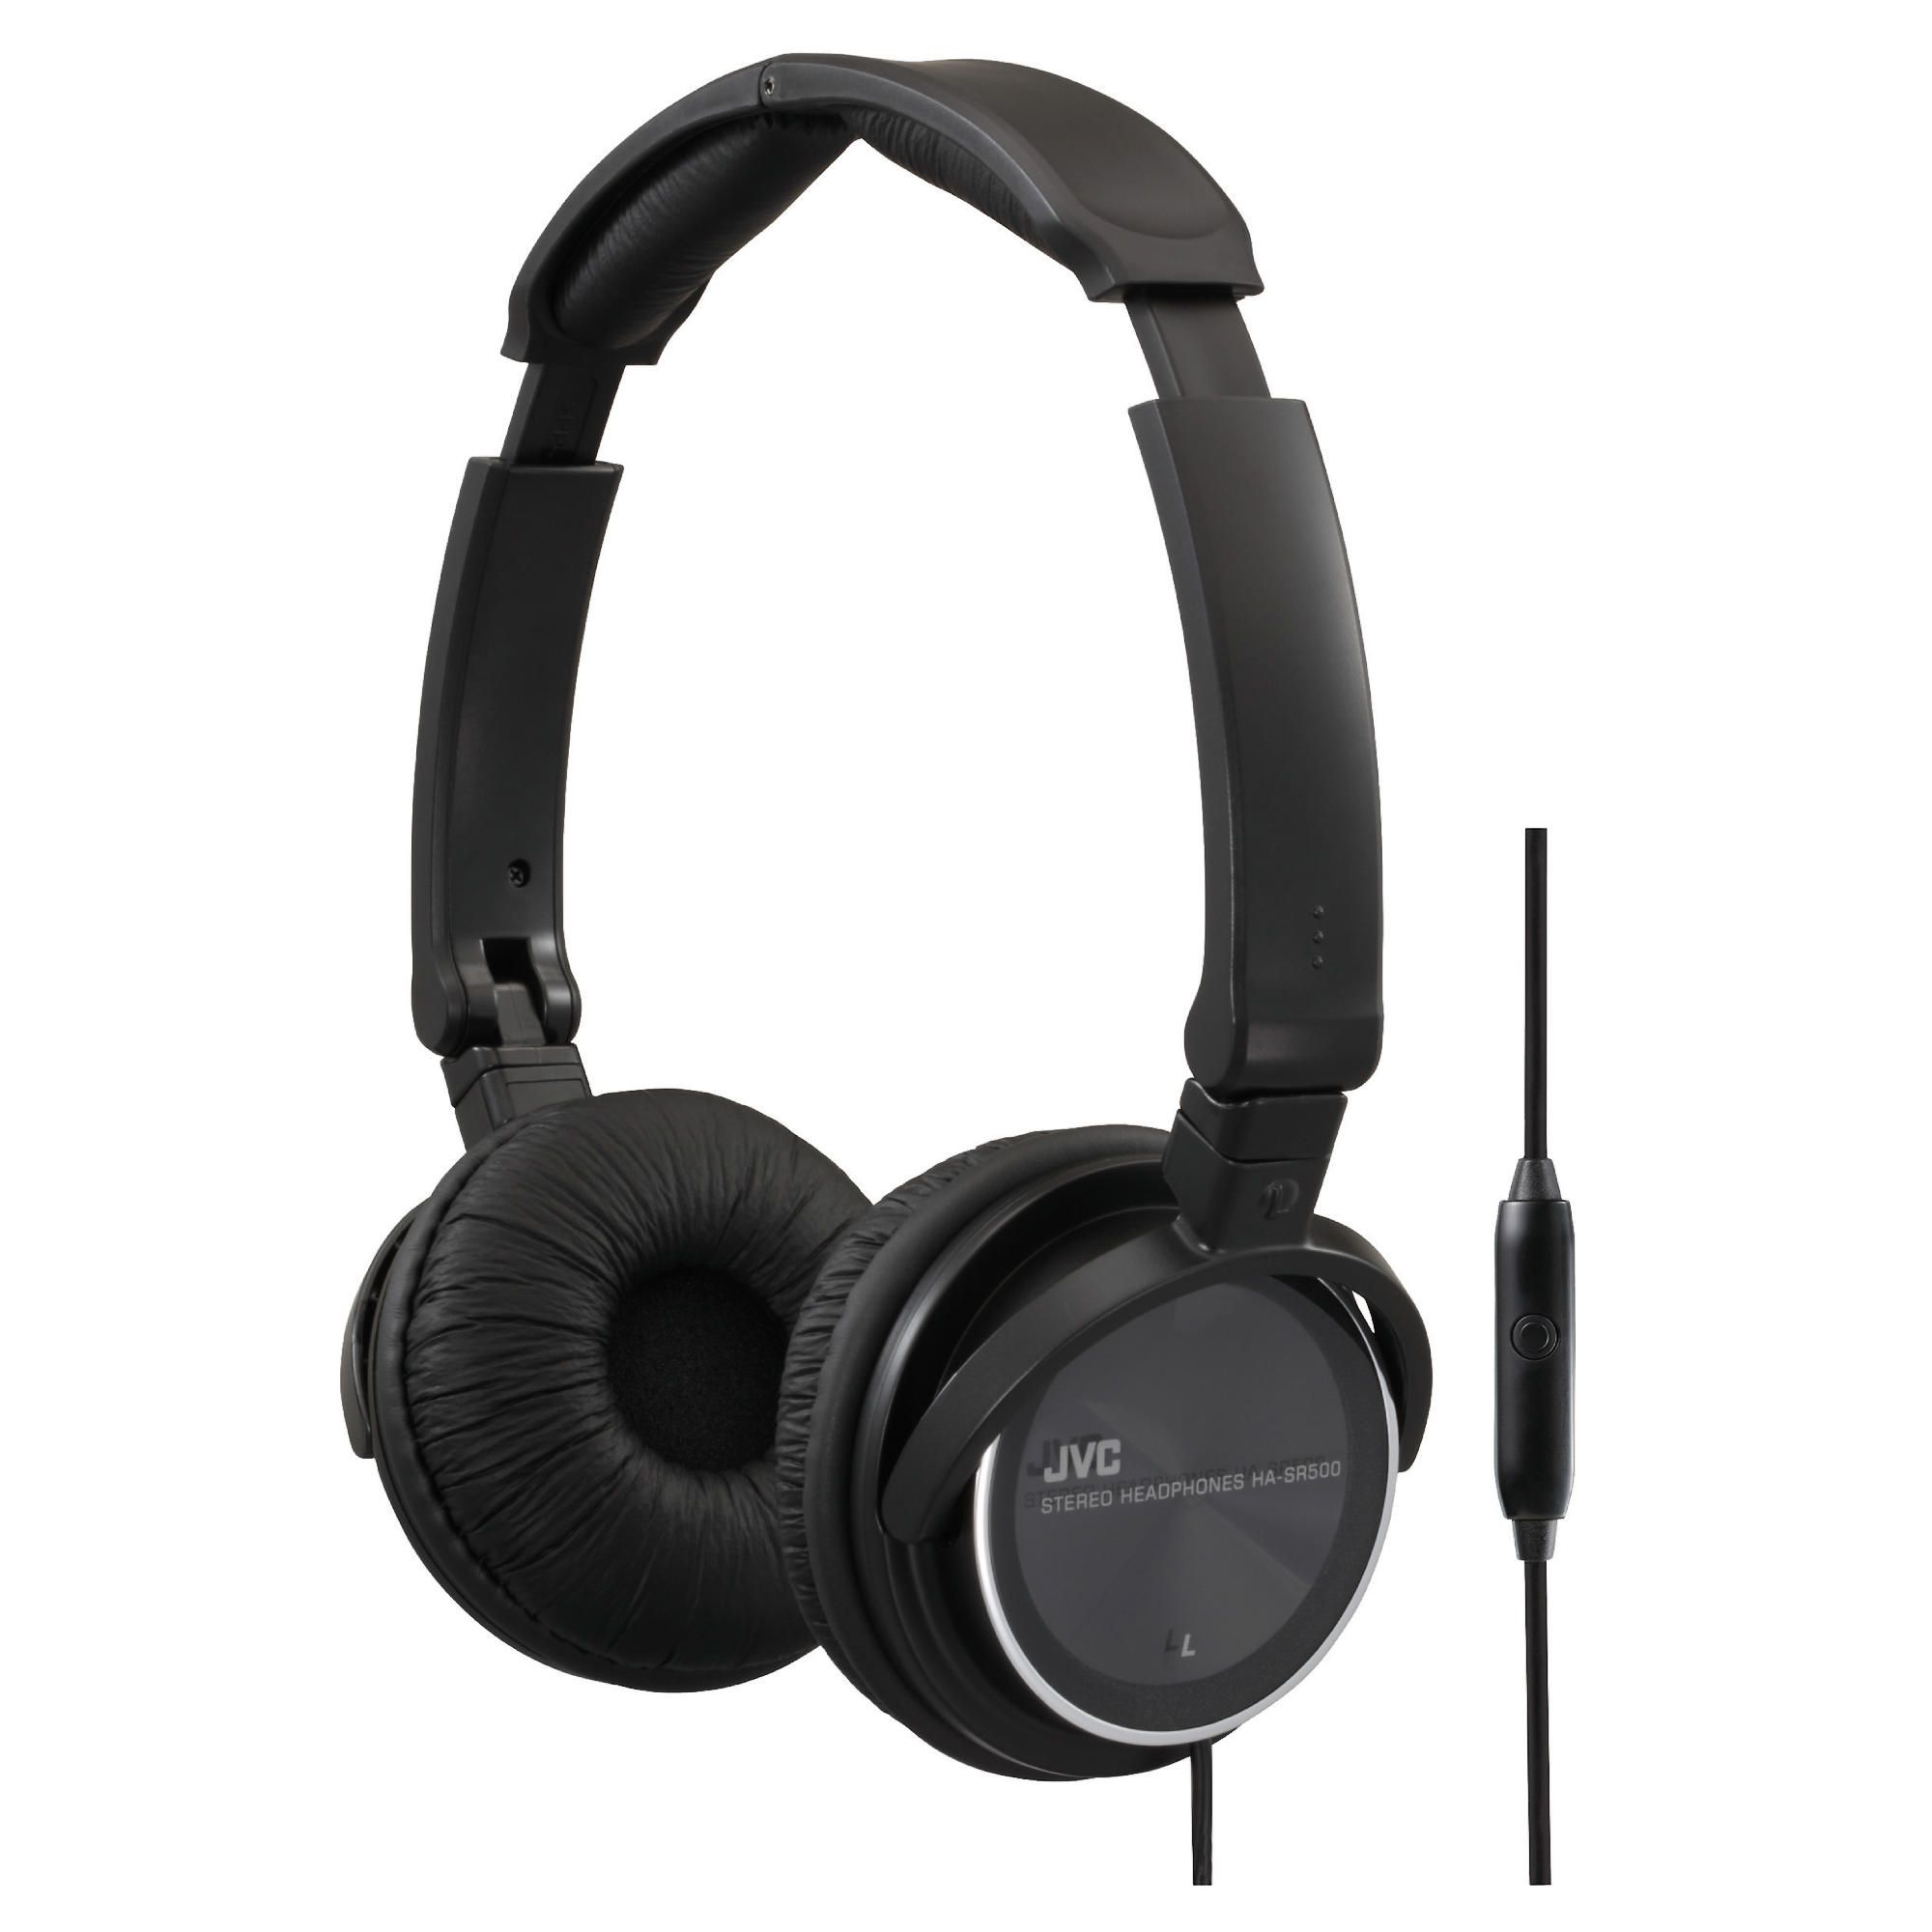 JVC Foldable Lightweight Headphones with Mic Black HASR500B